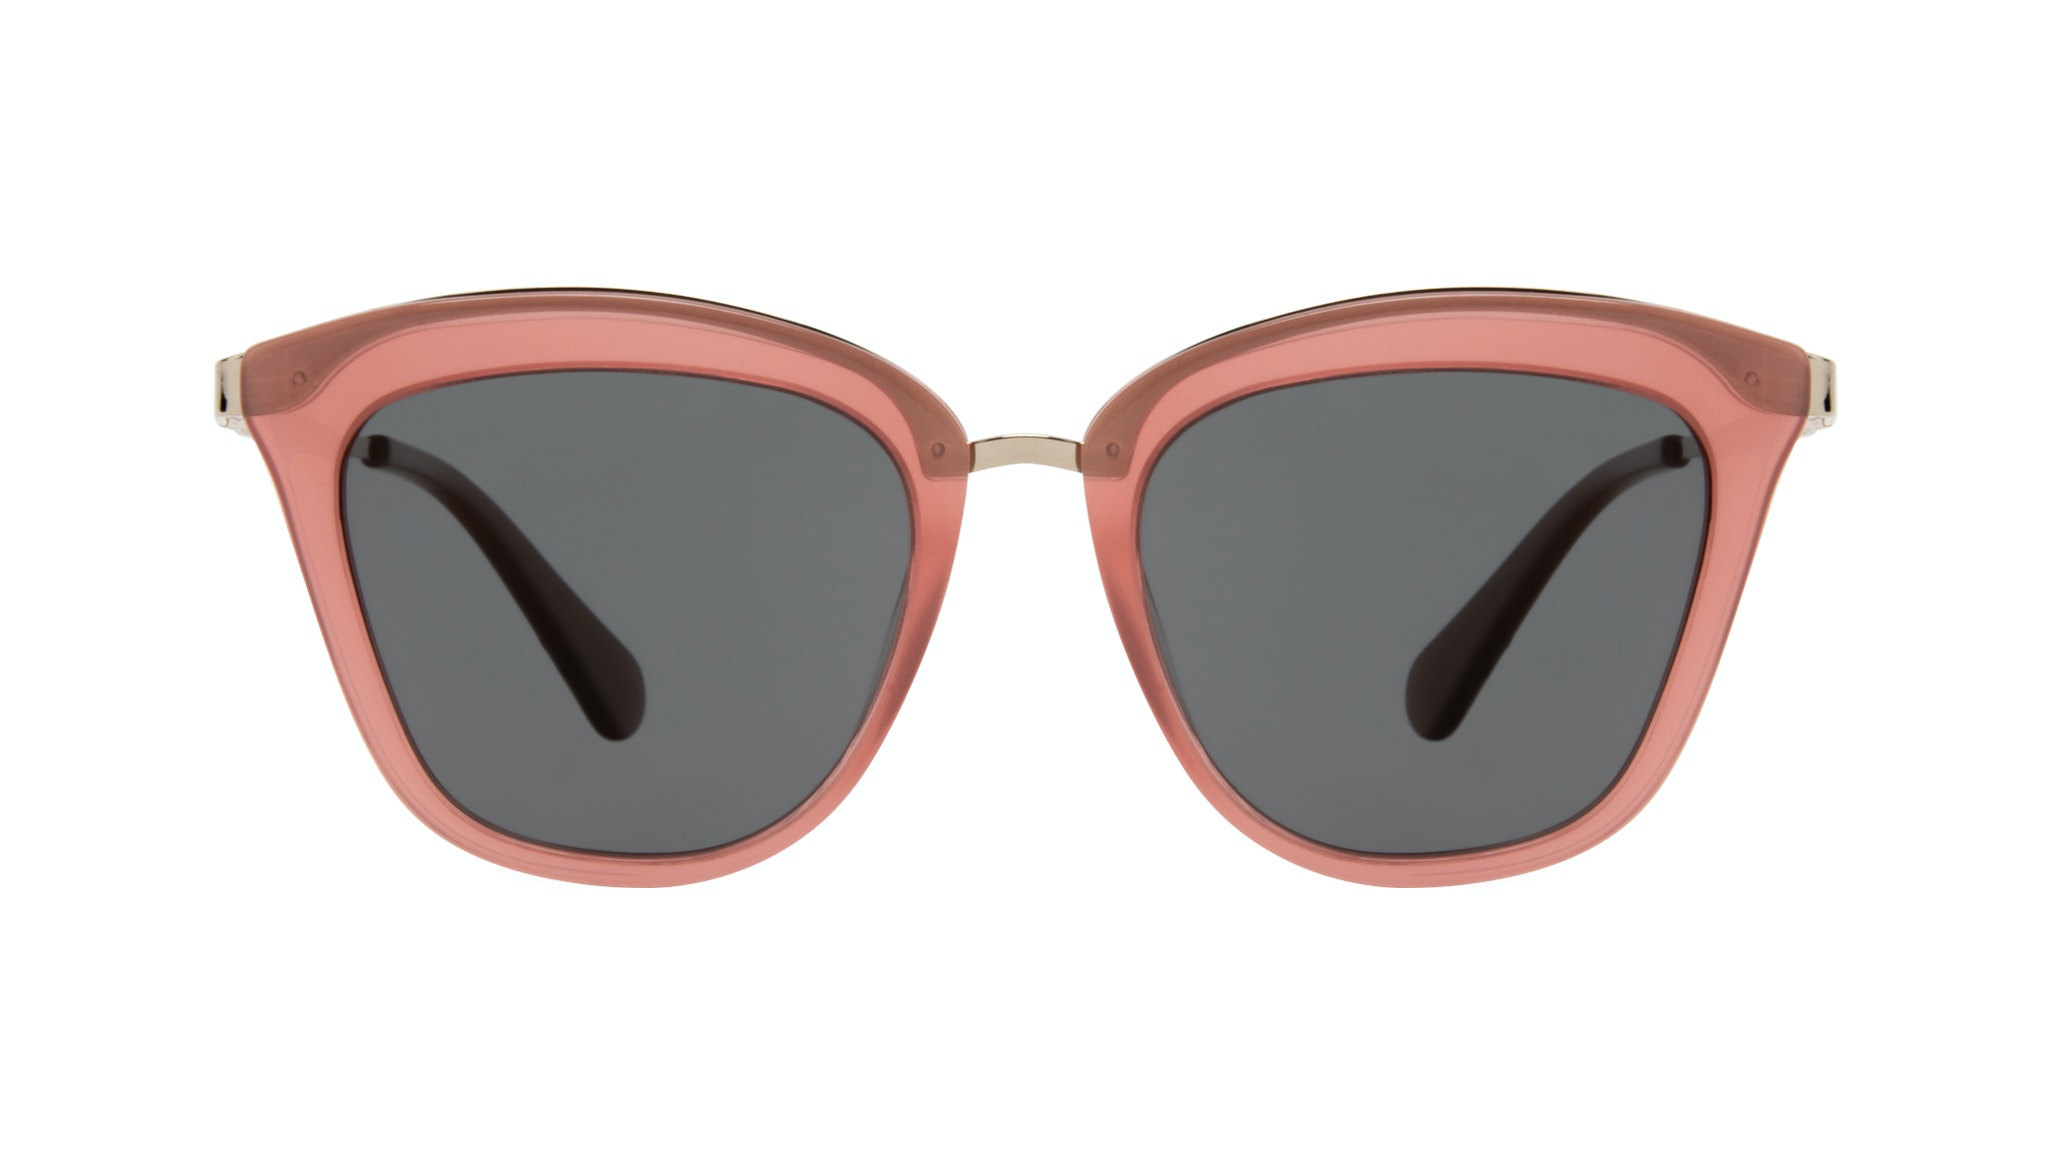 Affordable Fashion Glasses Cat Eye Sunglasses Women More Petite Red Front